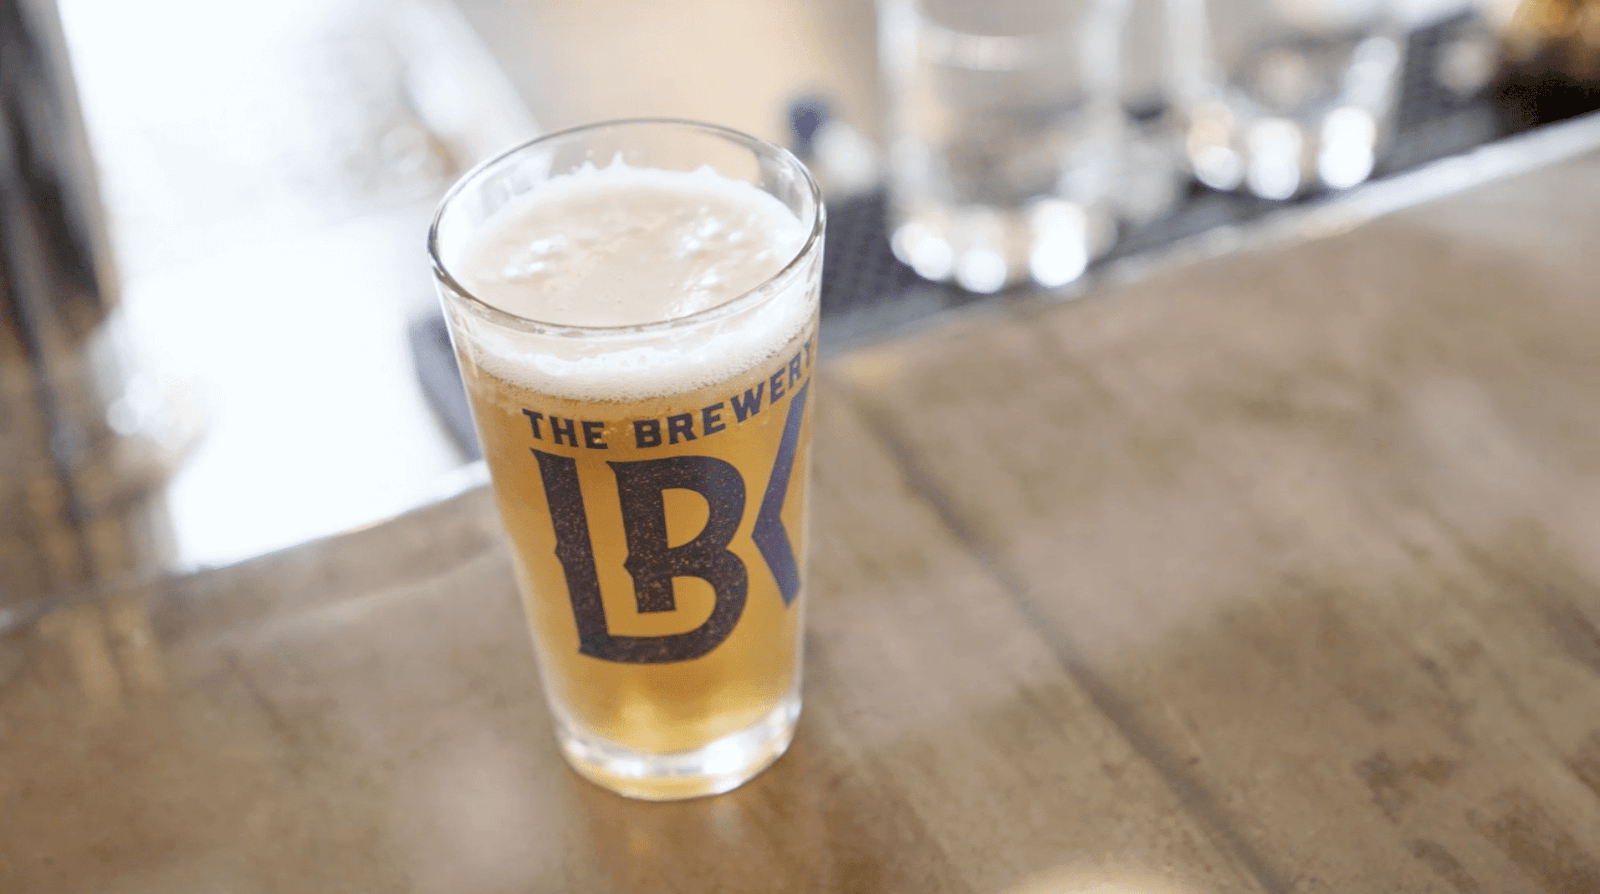 The Brewery LBK